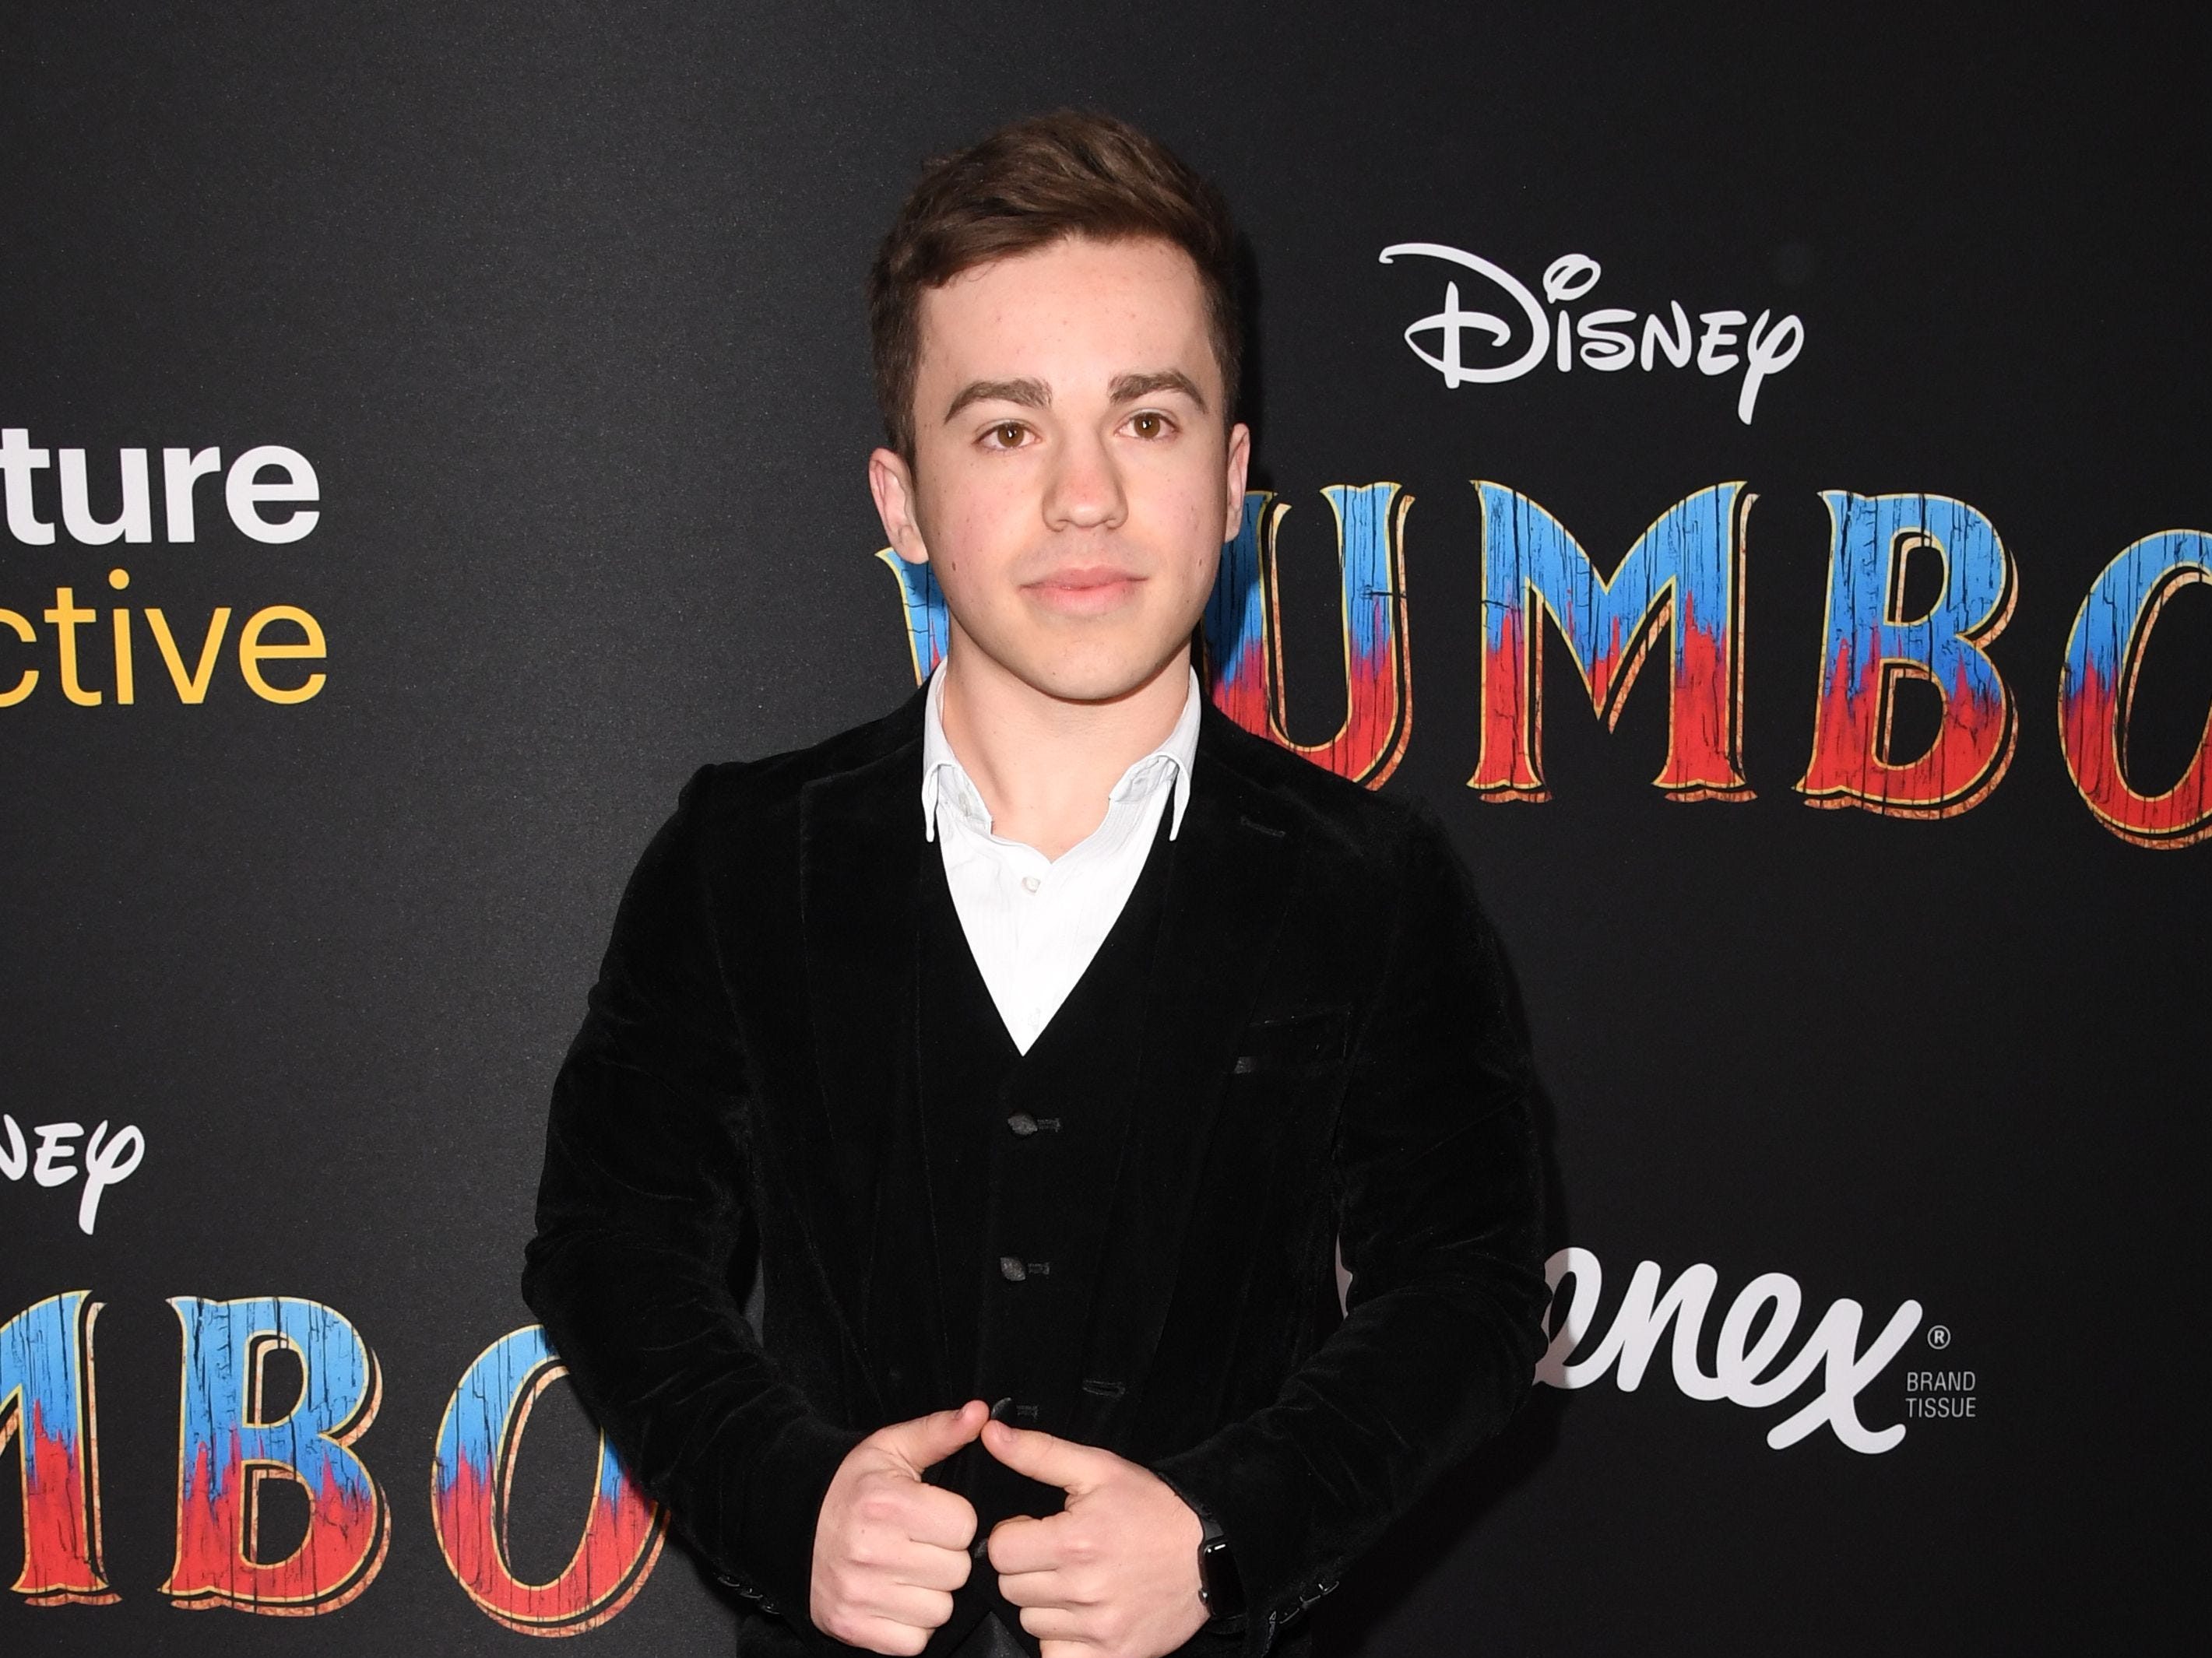 """English actor Edd Osmond arrives for the world premiere of Disney's """"Dumbo"""" at El Capitan theatre on March 11, 2019 in Hollywood. (Photo by Robyn Beck / AFP)ROBYN BECK/AFP/Getty Images ORG XMIT: Premiere ORIG FILE ID: AFP_1EI2ID"""